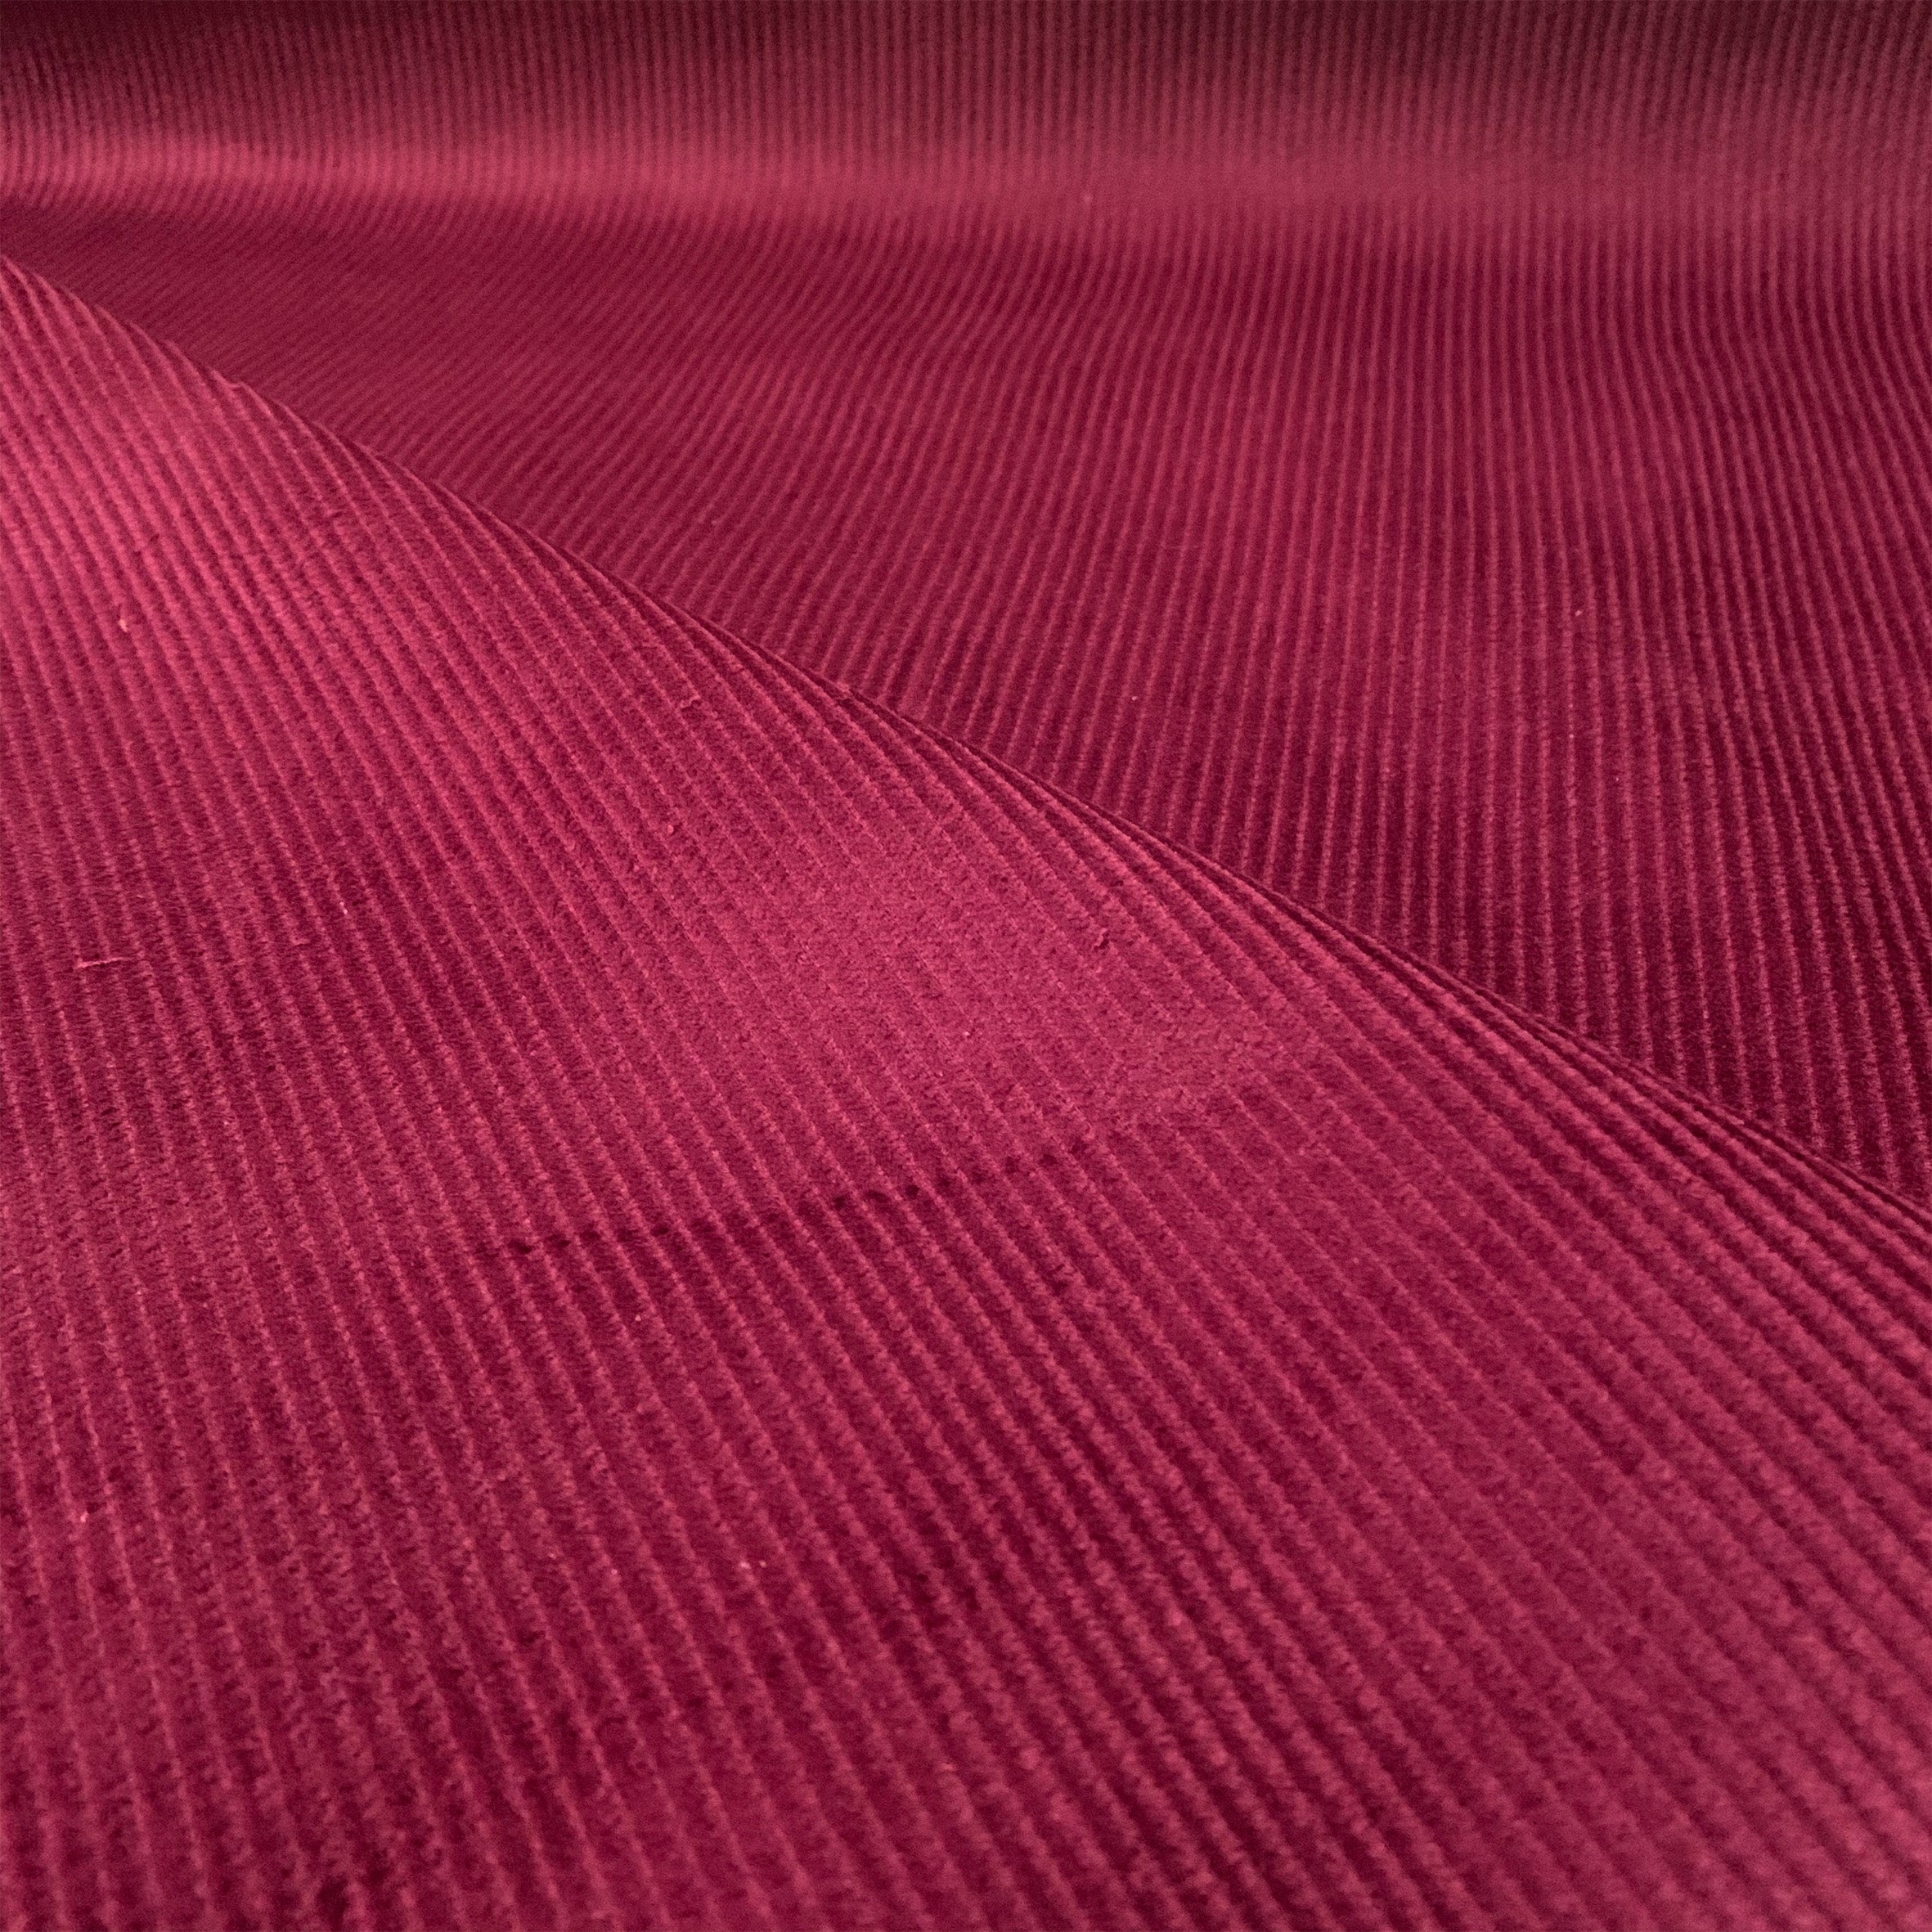 WINE MAROON RED 8 WALE COTTON CORDUROY FABRIC